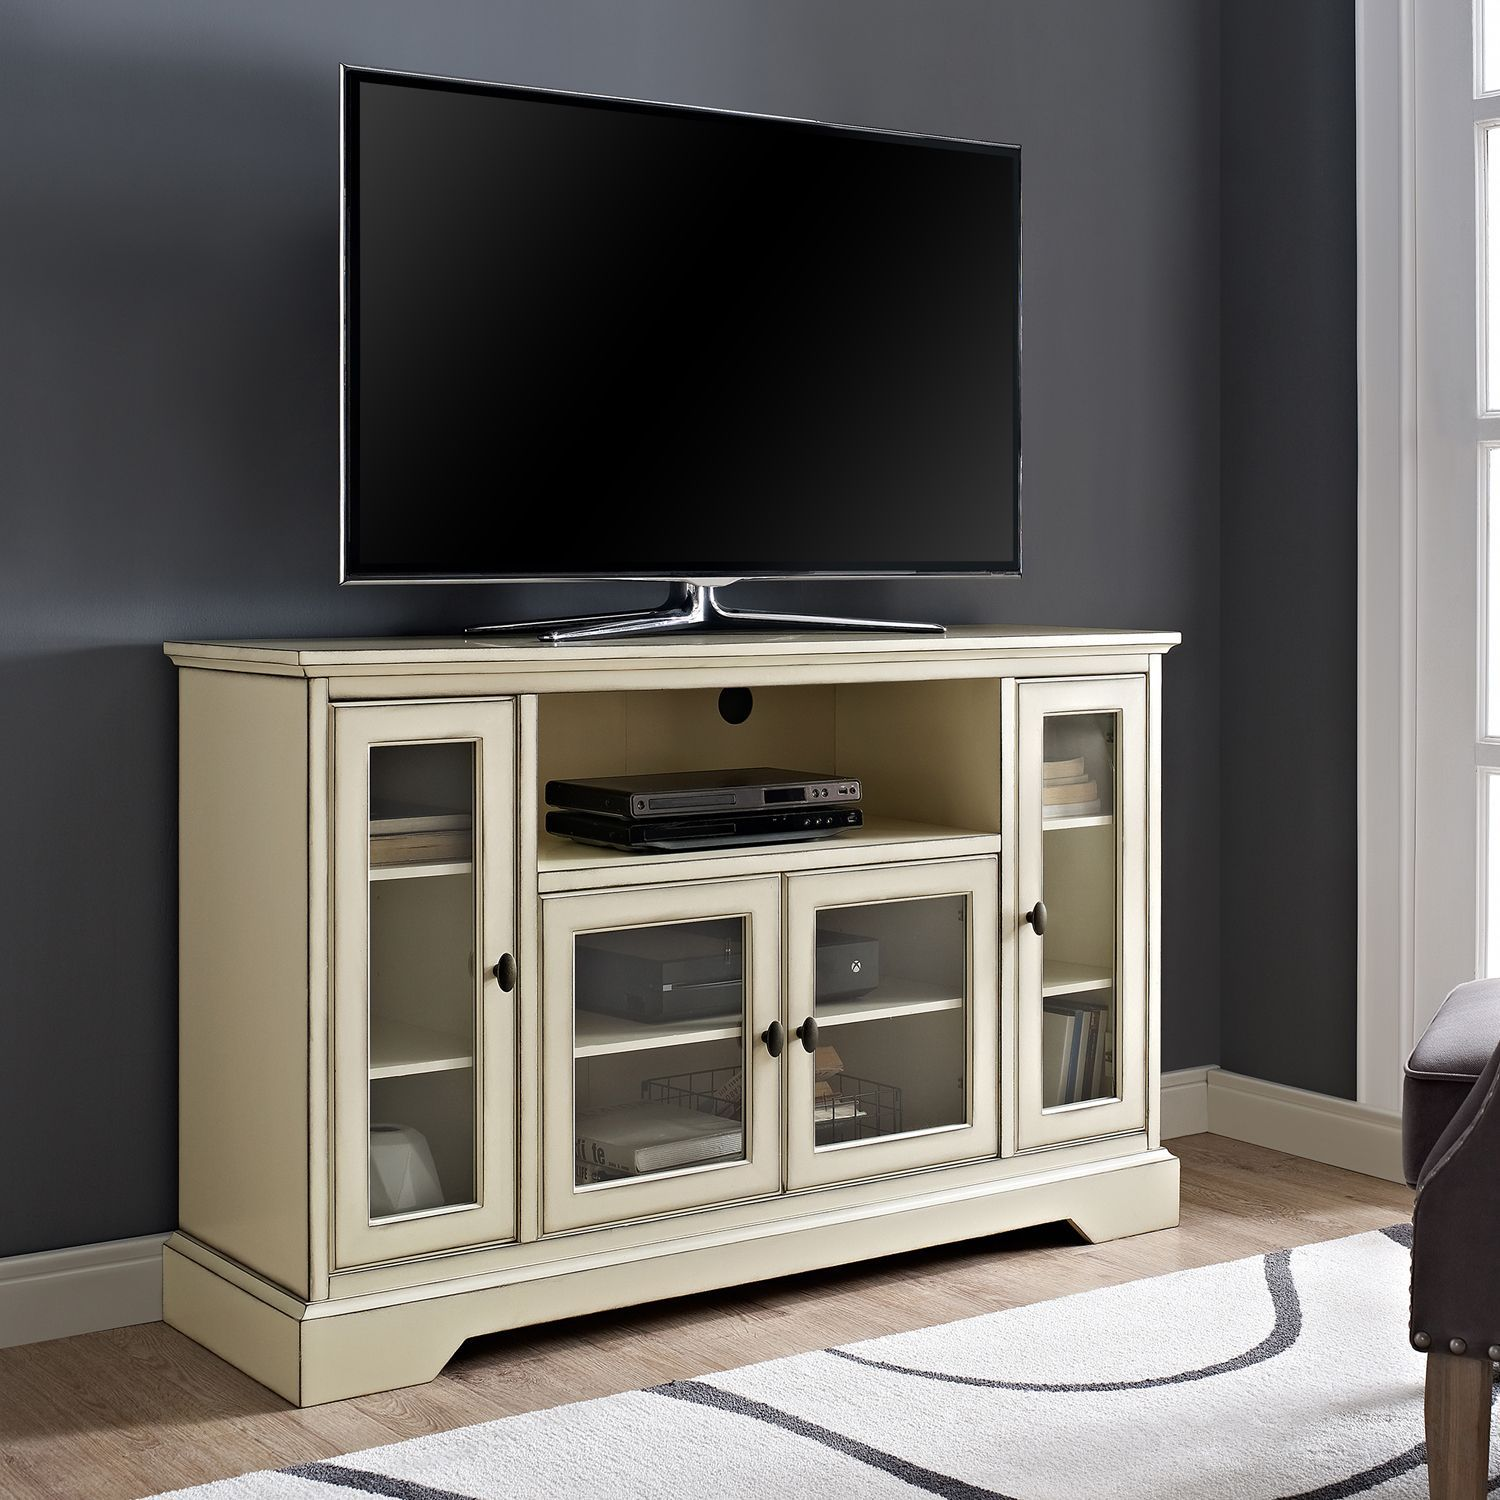 Traditional Highboy Antique White Wood Tv Stand Pier 1 Imports Tv Stand Wood Bedroom Tv Stand Tall Tv Stands